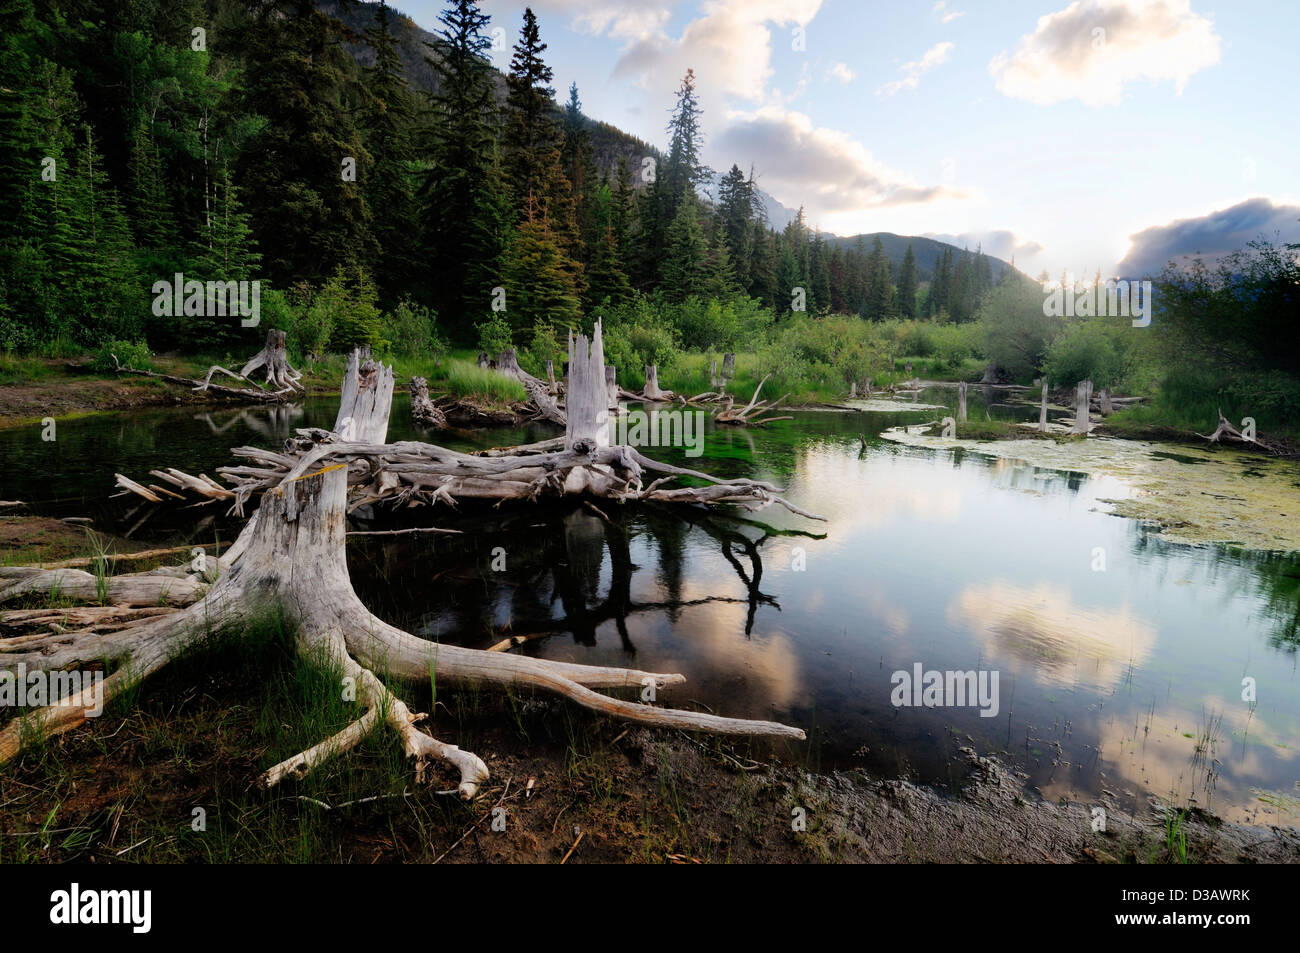 Vermillion Lakes Banff National Park Alberta Canada Reflection mountains clouds lake Mount Rundle tree stumps fire - Stock Image